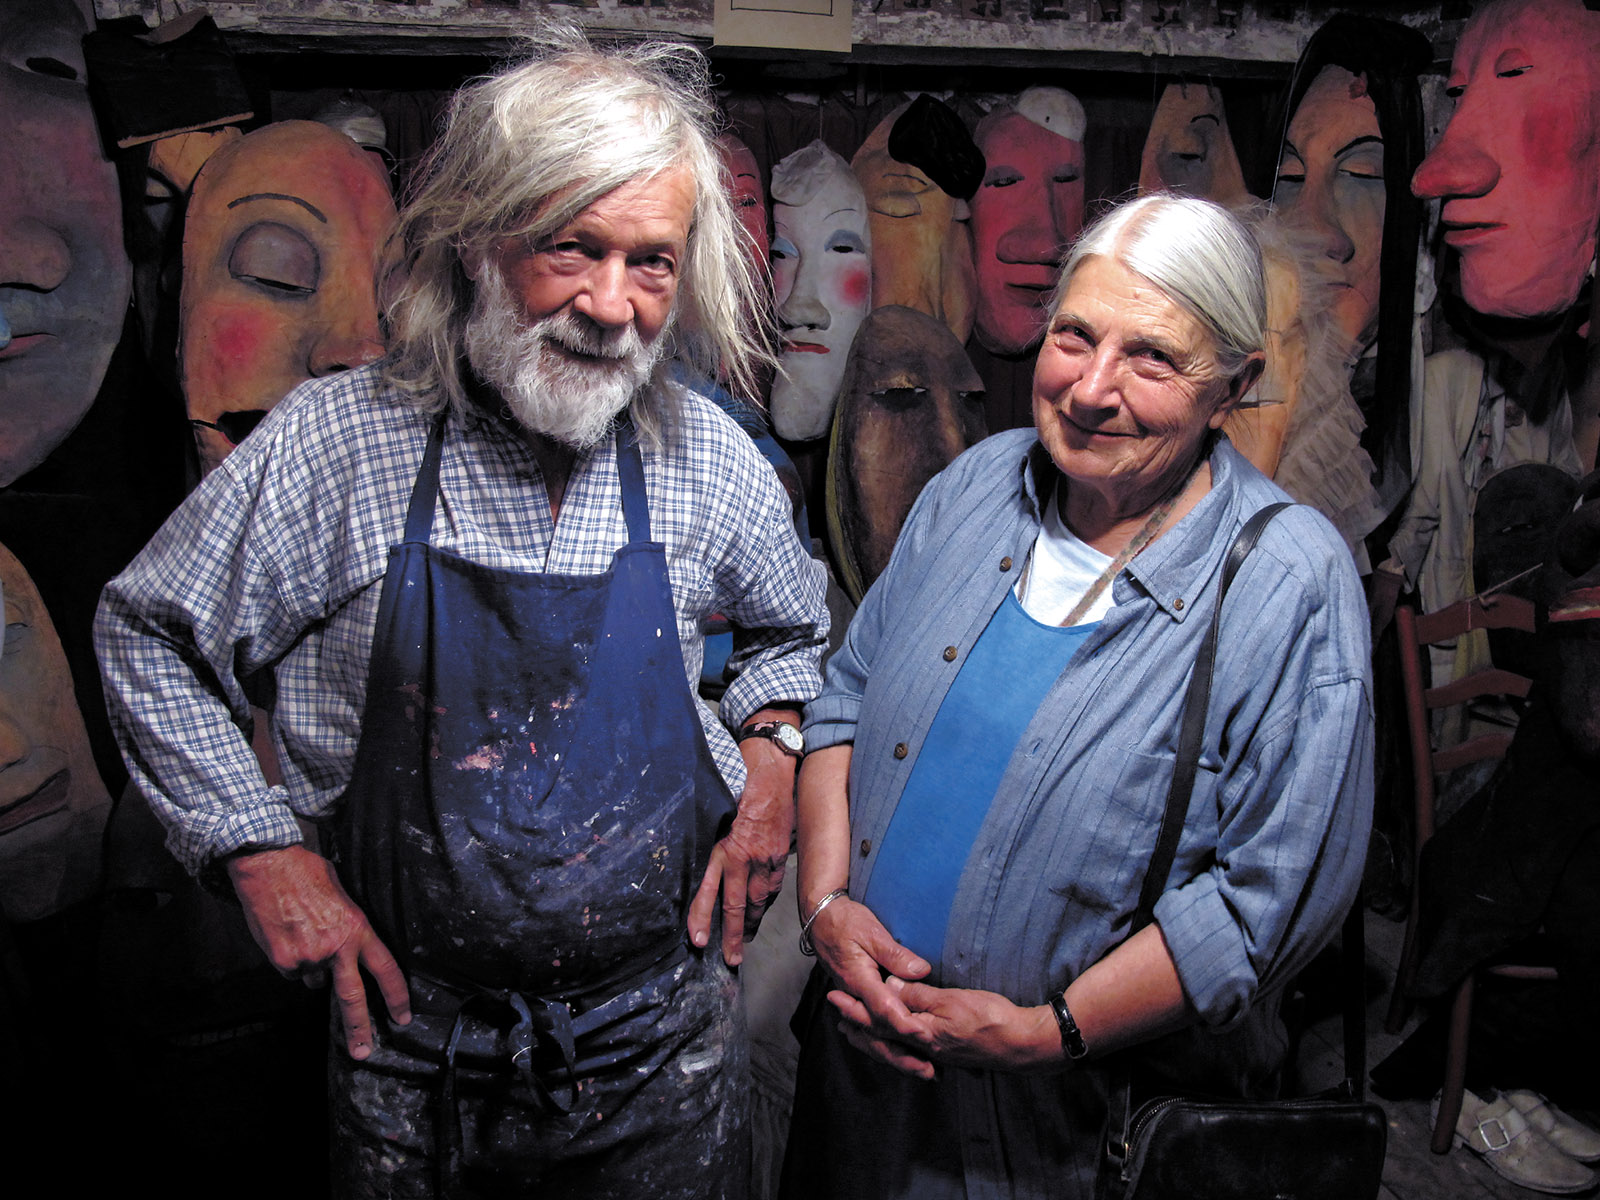 Peter and Elka Schumann at the Bread and Puppet Museum, Glover, Vermont